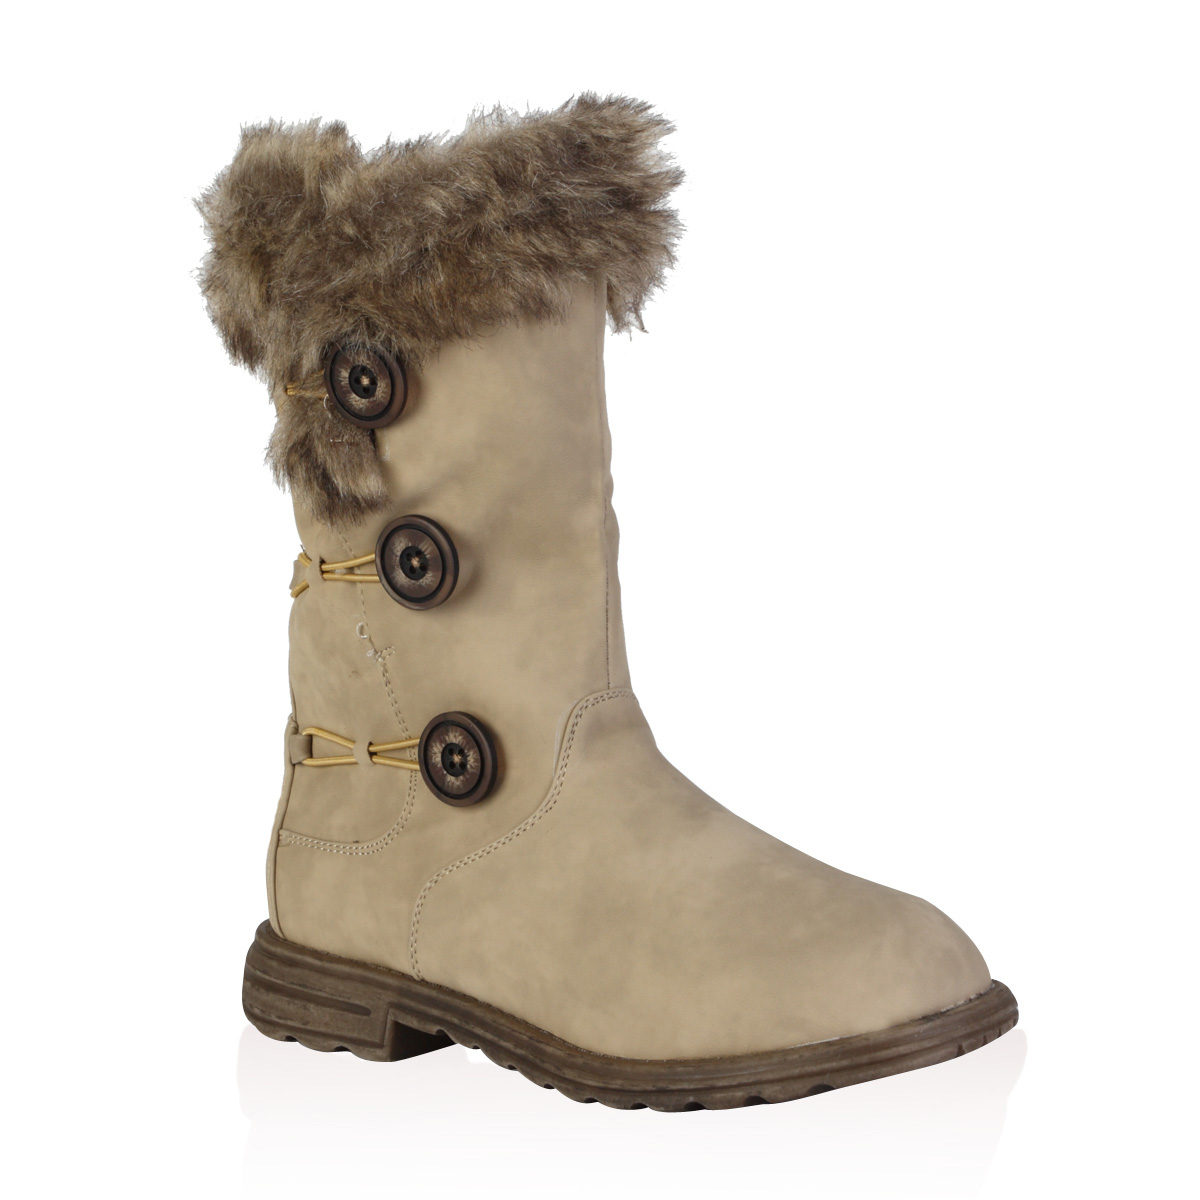 Ladies Soft Faux Fur Lined Womens Button Winter Snow Calf